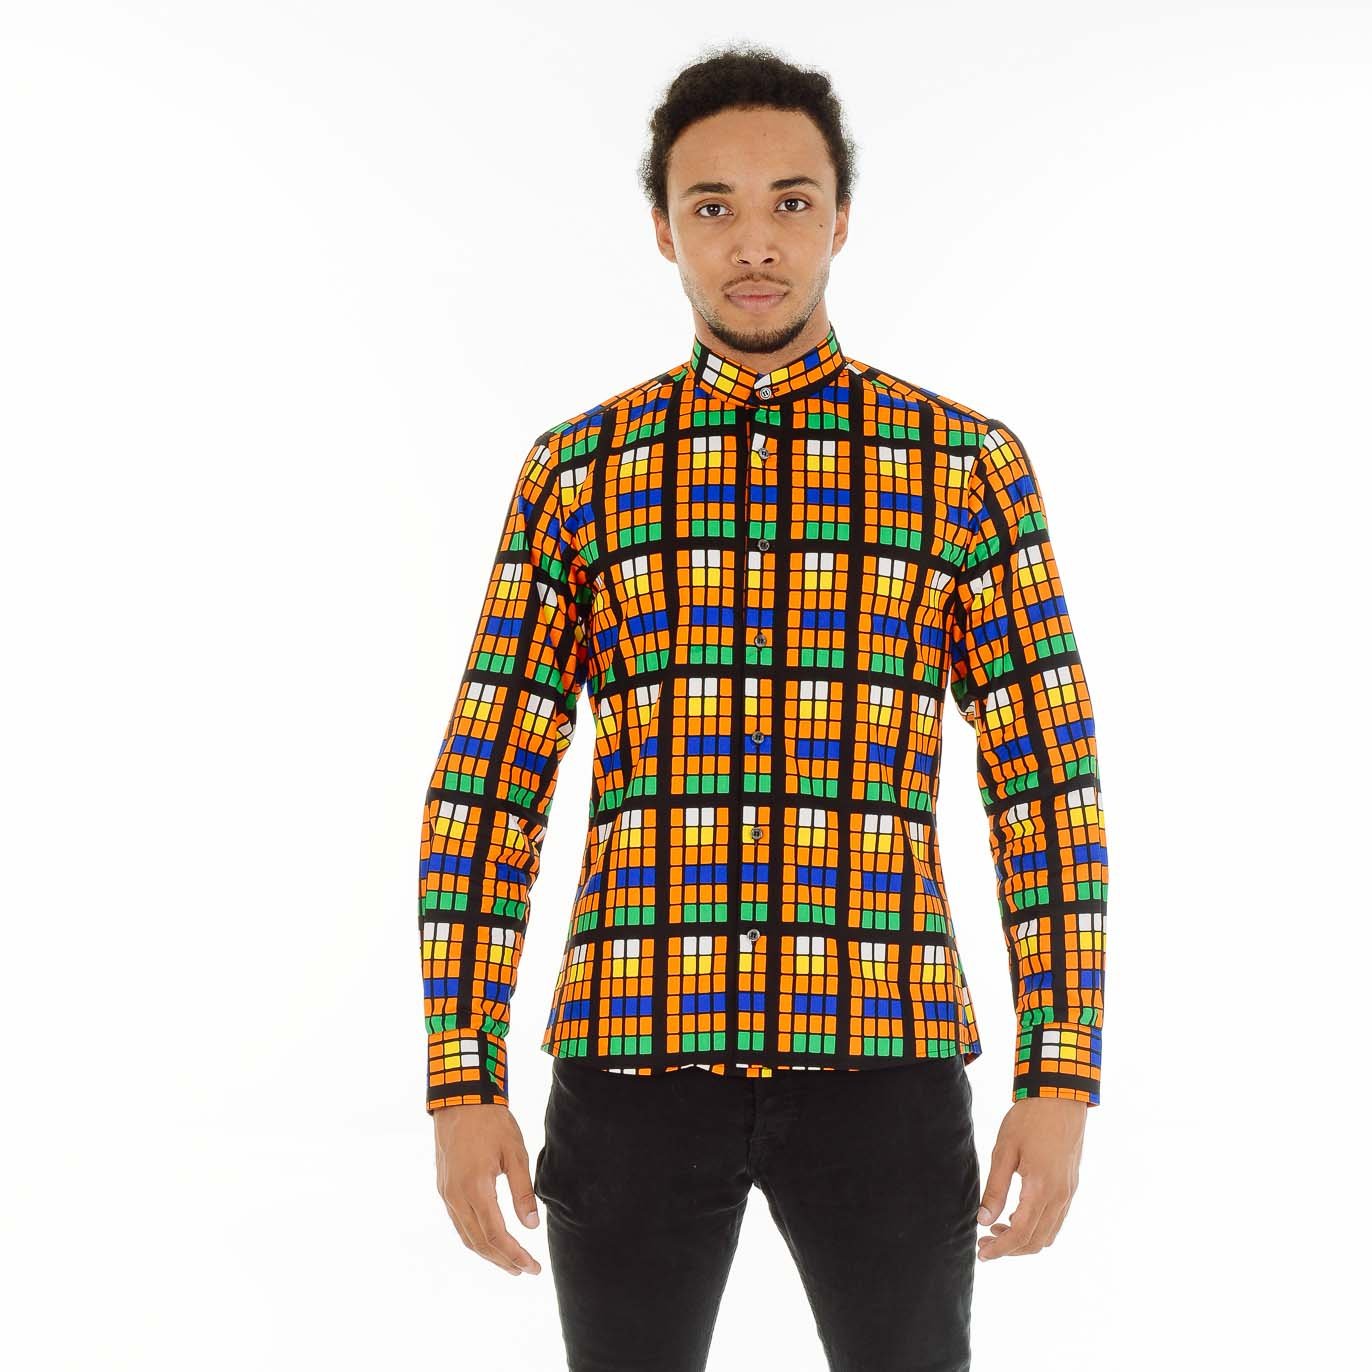 Tolulope Grandfather Shirt